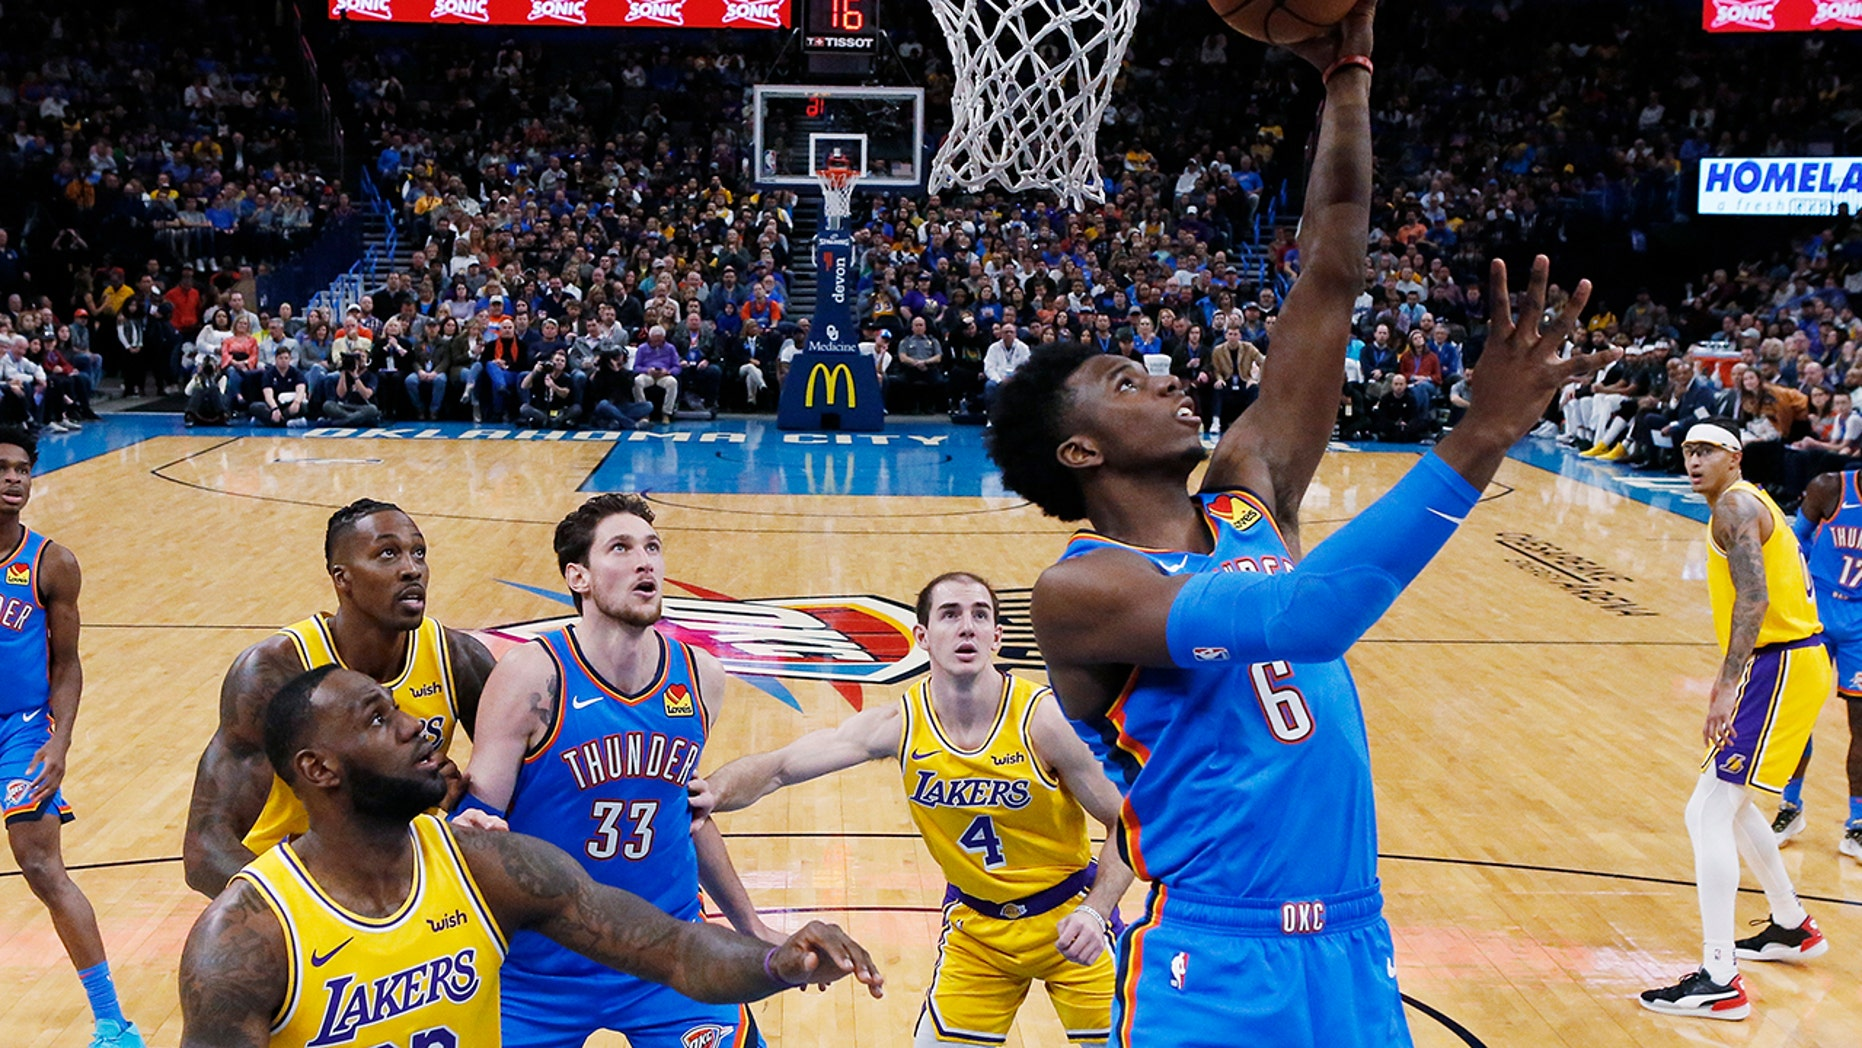 Oklahoma City Thunder guard Hamidou Diallo (6) shoots in front of Los Angeles Lakers forward LeBron James (23) and guard Alex Caruso (4) during the fist half of an NBA basketball game Friday, Nov. 22, 2019, in Oklahoma City. (AP Photo/Sue Ogrocki)